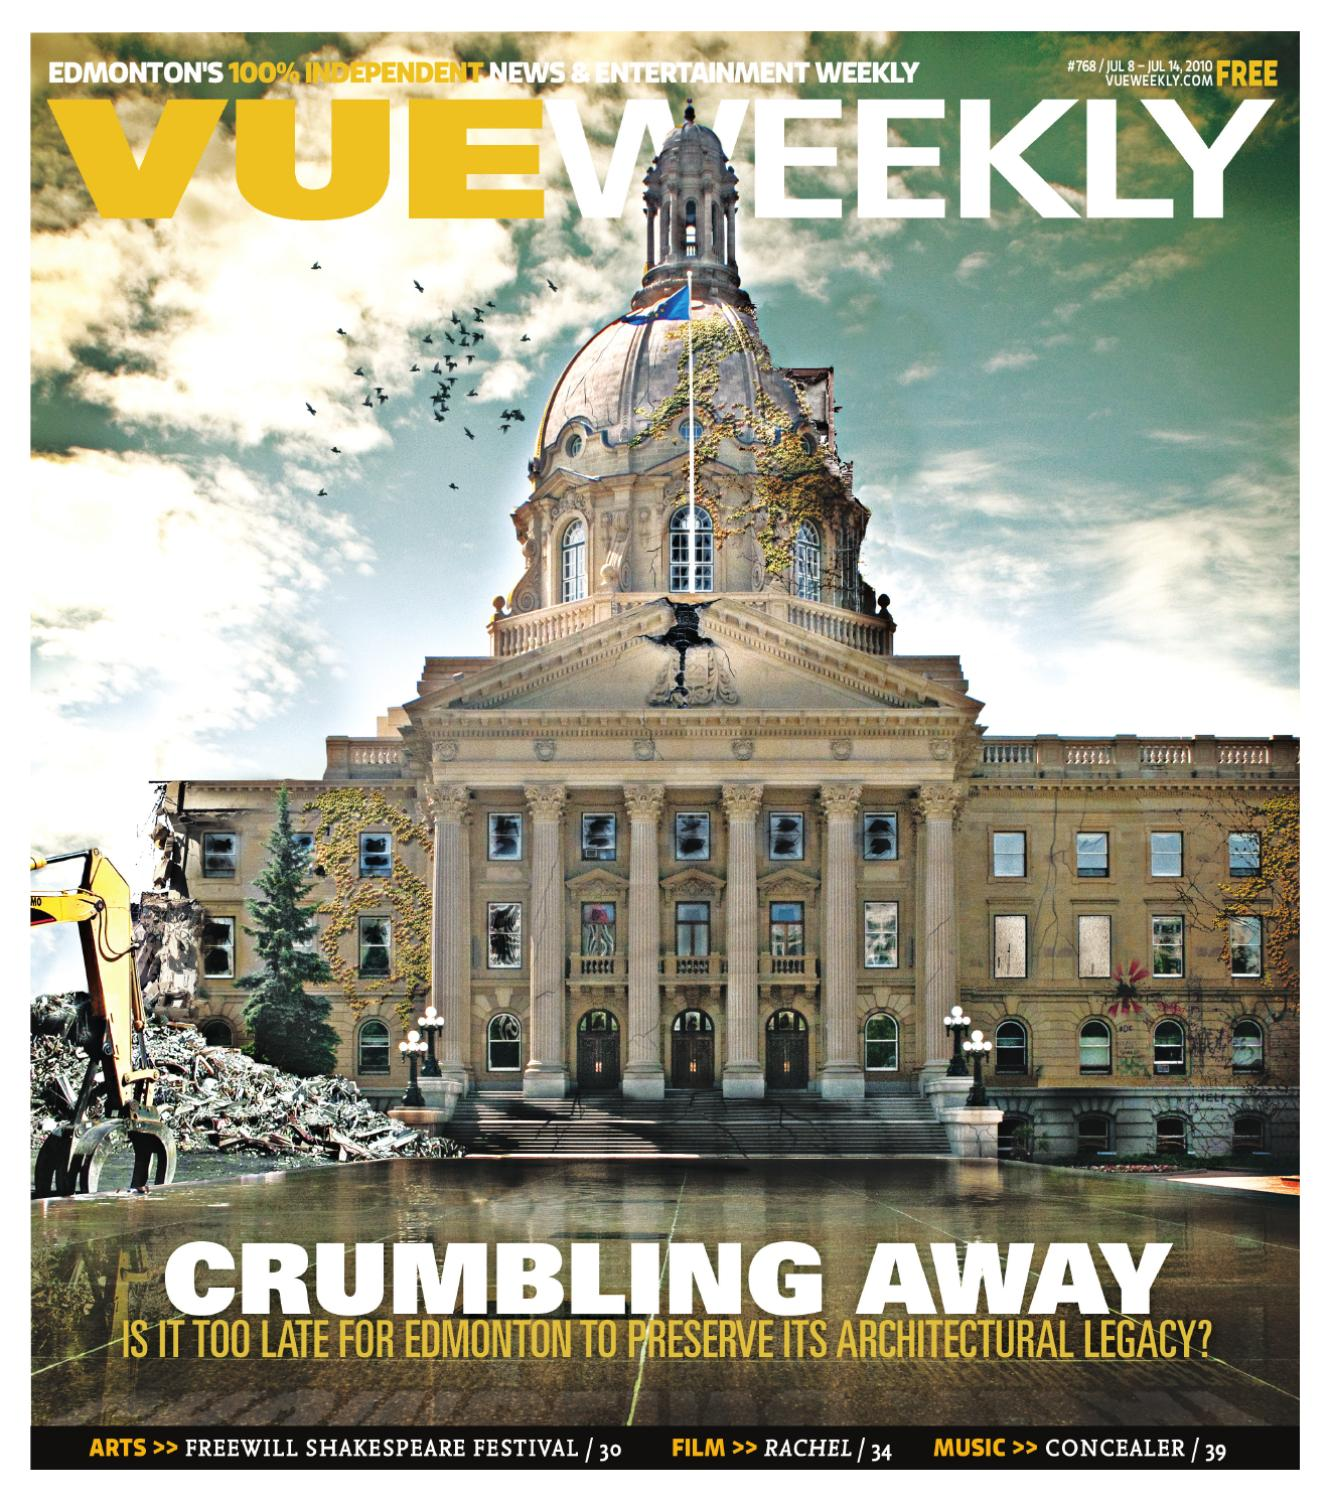 98e60f225e30 Vue Weekly Issue 768 July 8 - 14 2010 by Vue Weekly - issuu